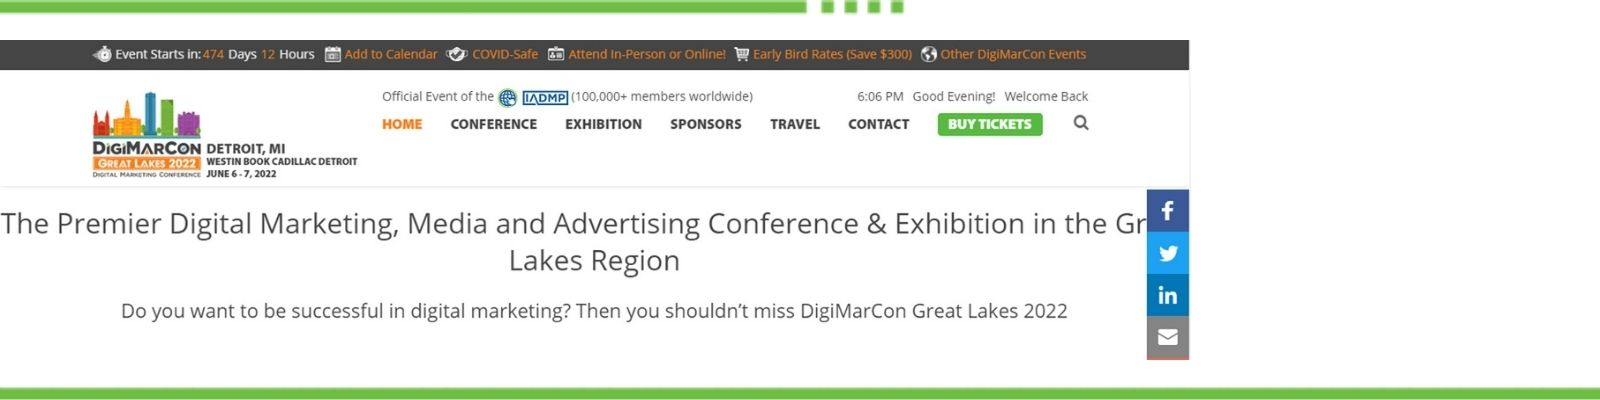 DigiMarCon Great Lakes